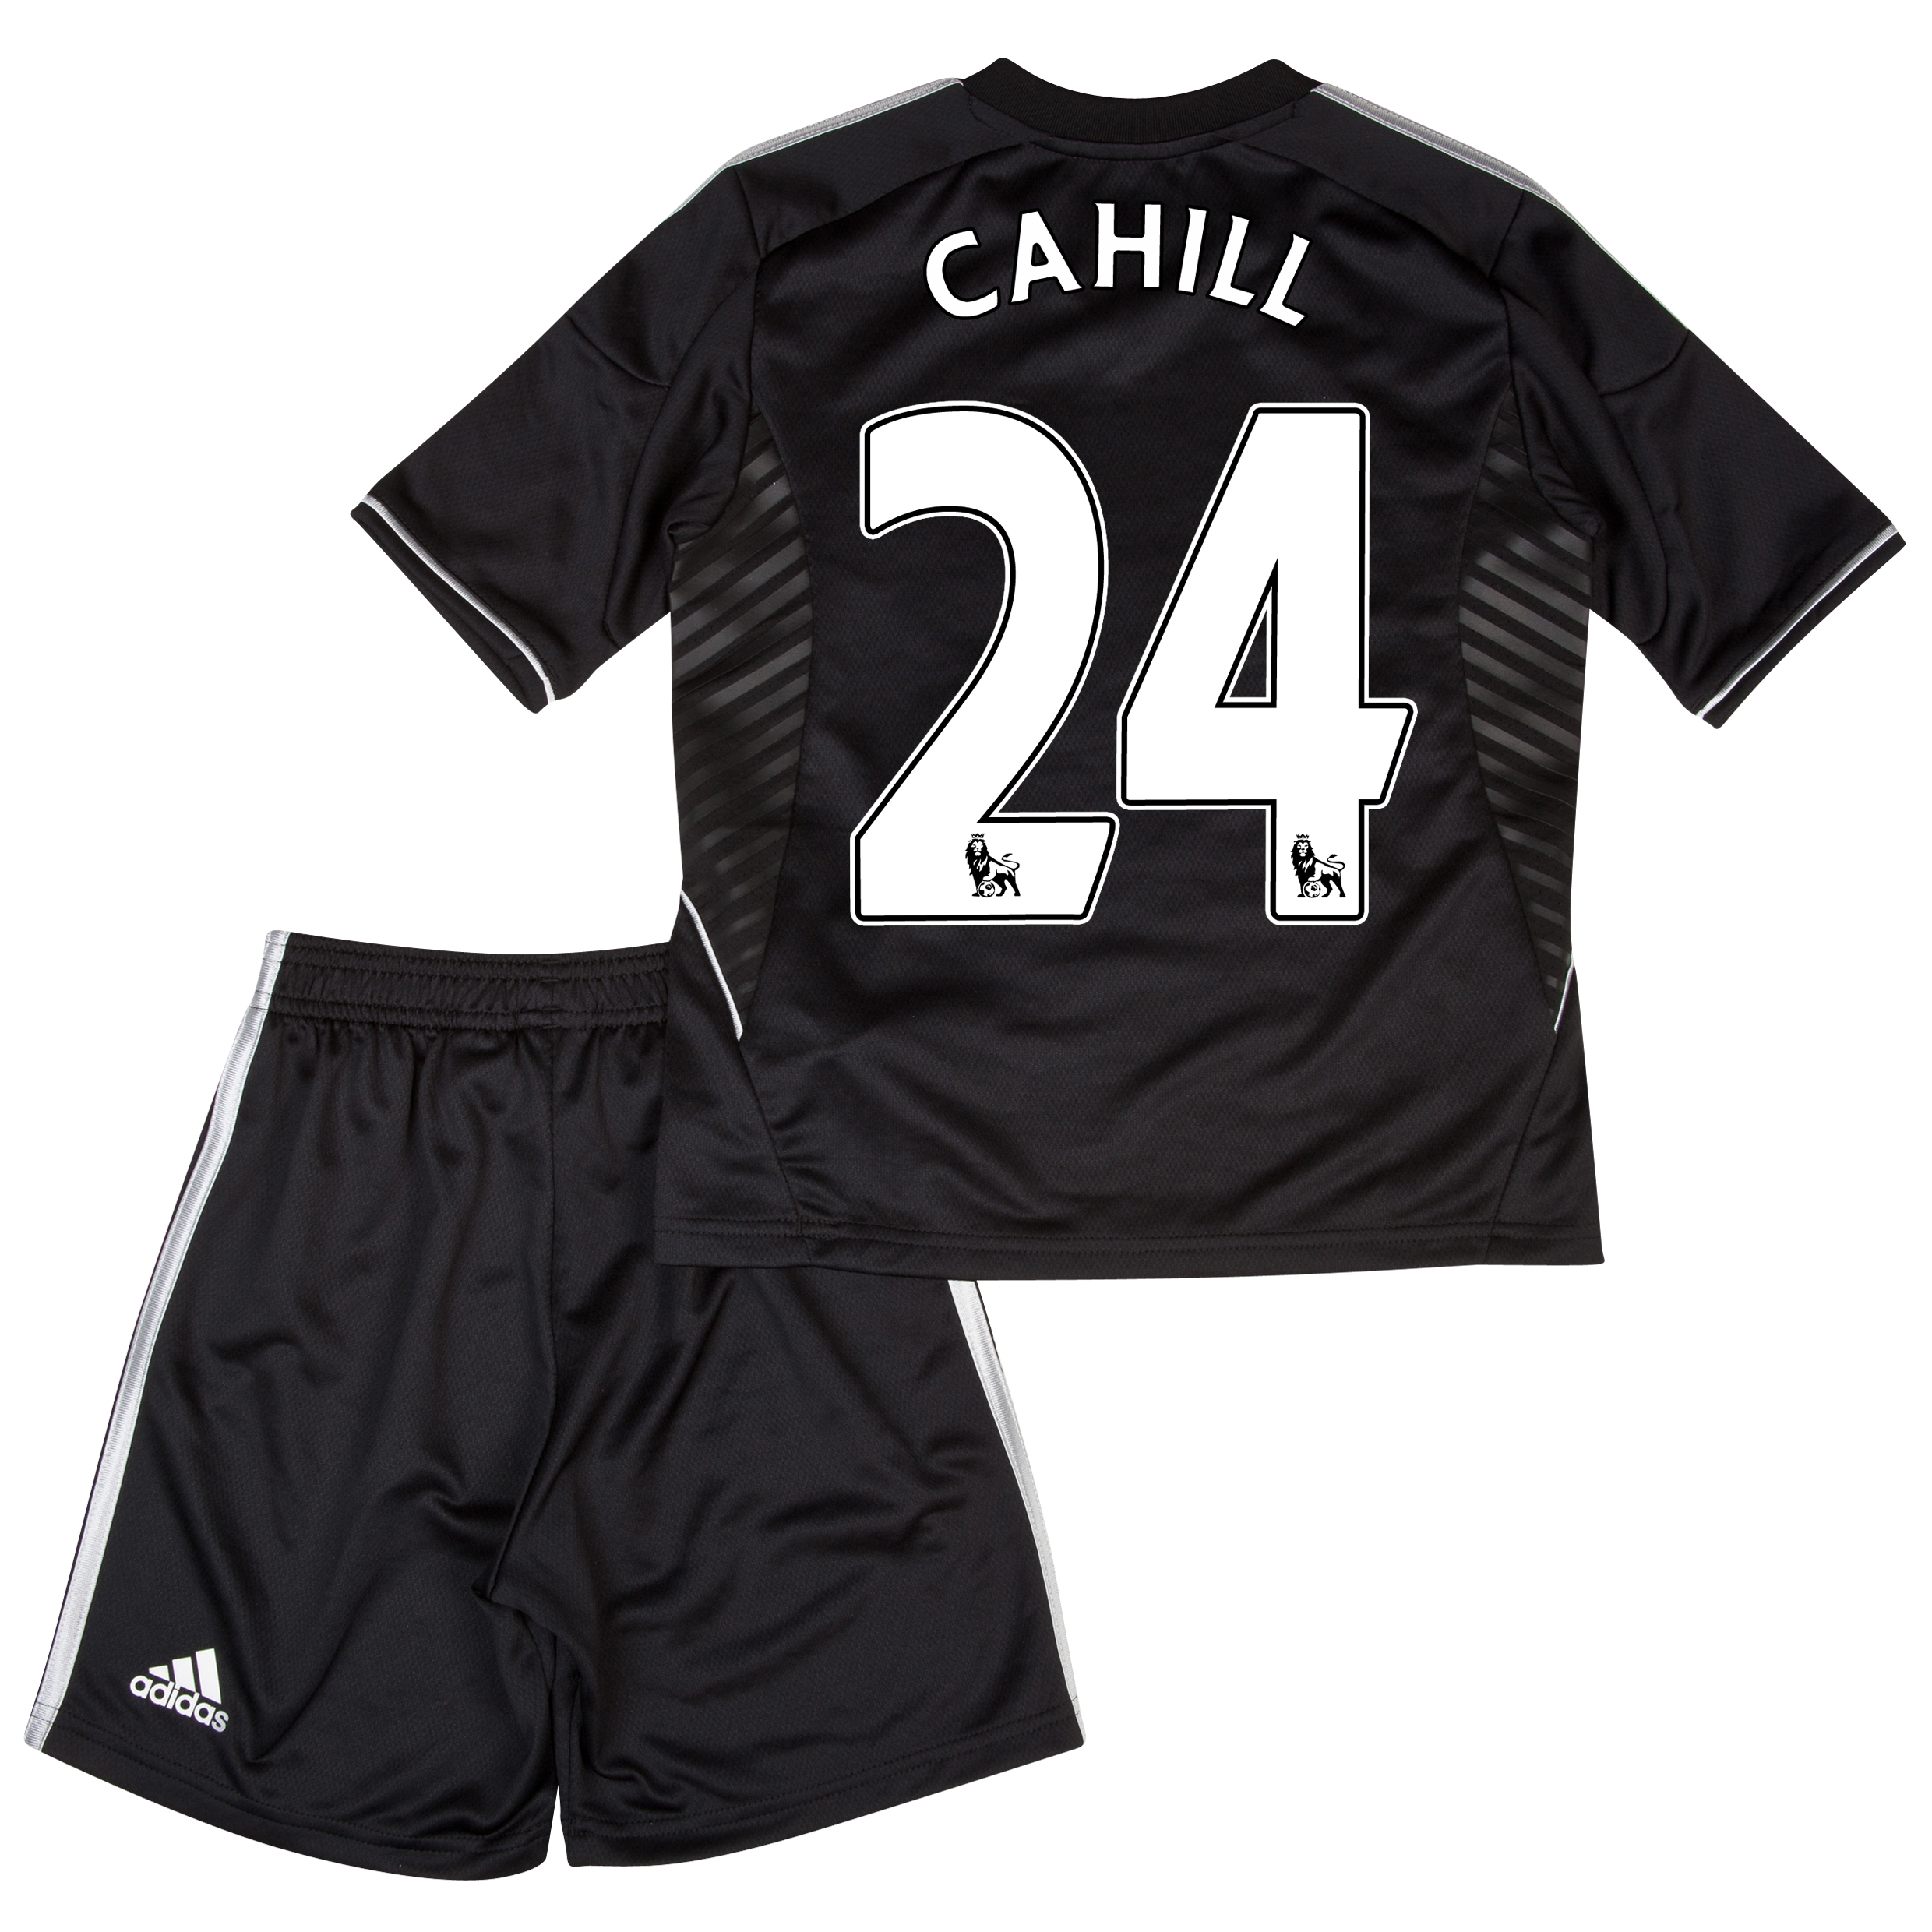 Chelsea Third Mini Kit 2013/14 with Cahill 24 printing